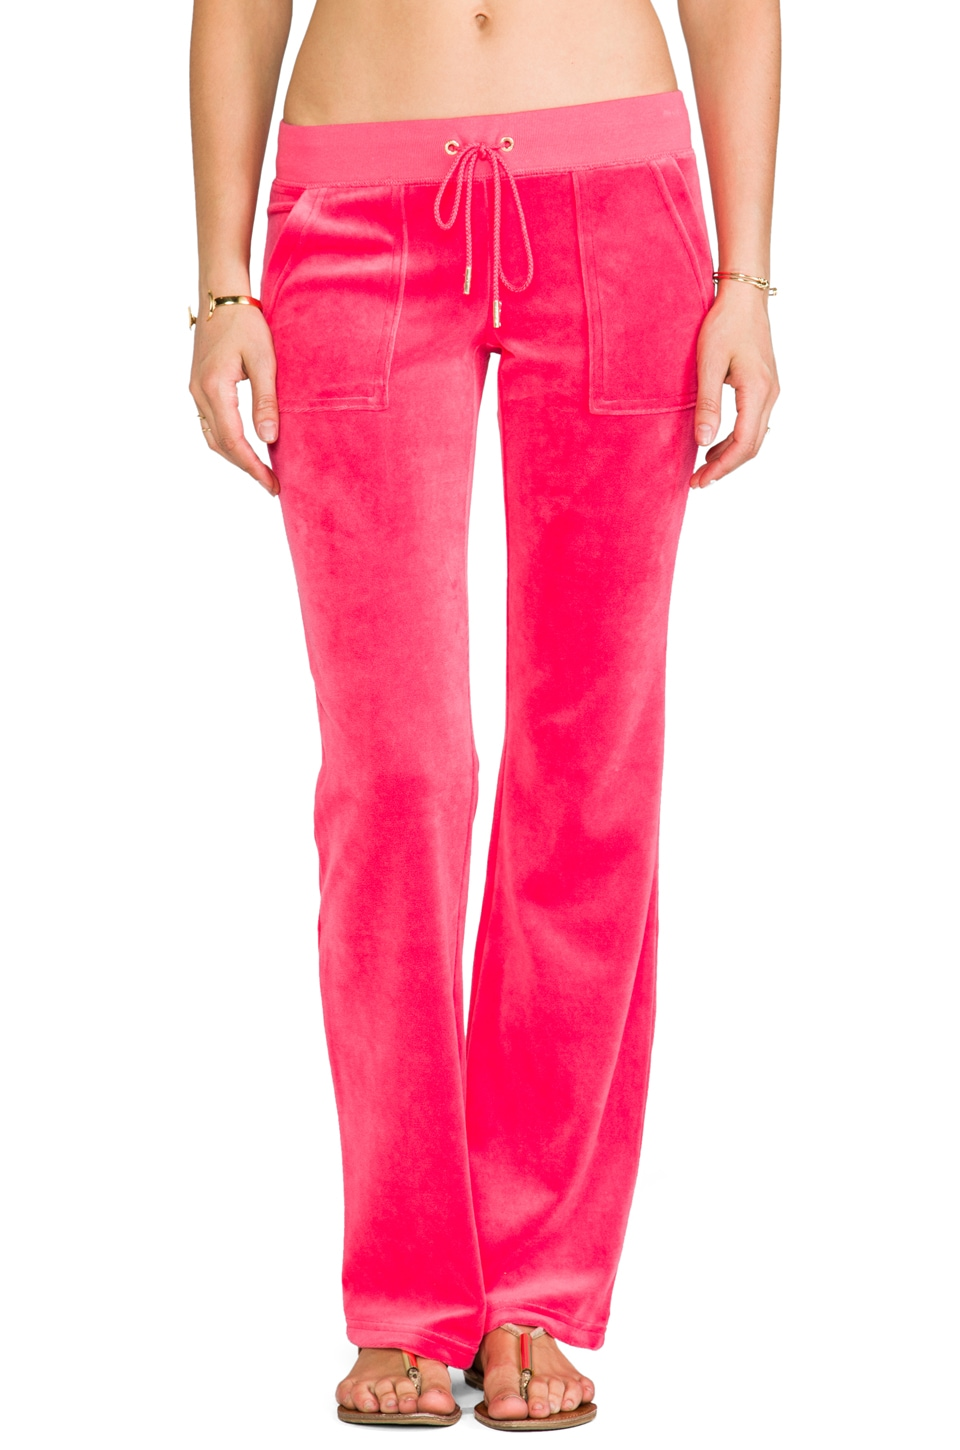 Juicy Couture J Bling Velour Bootcut Pant in Geranium